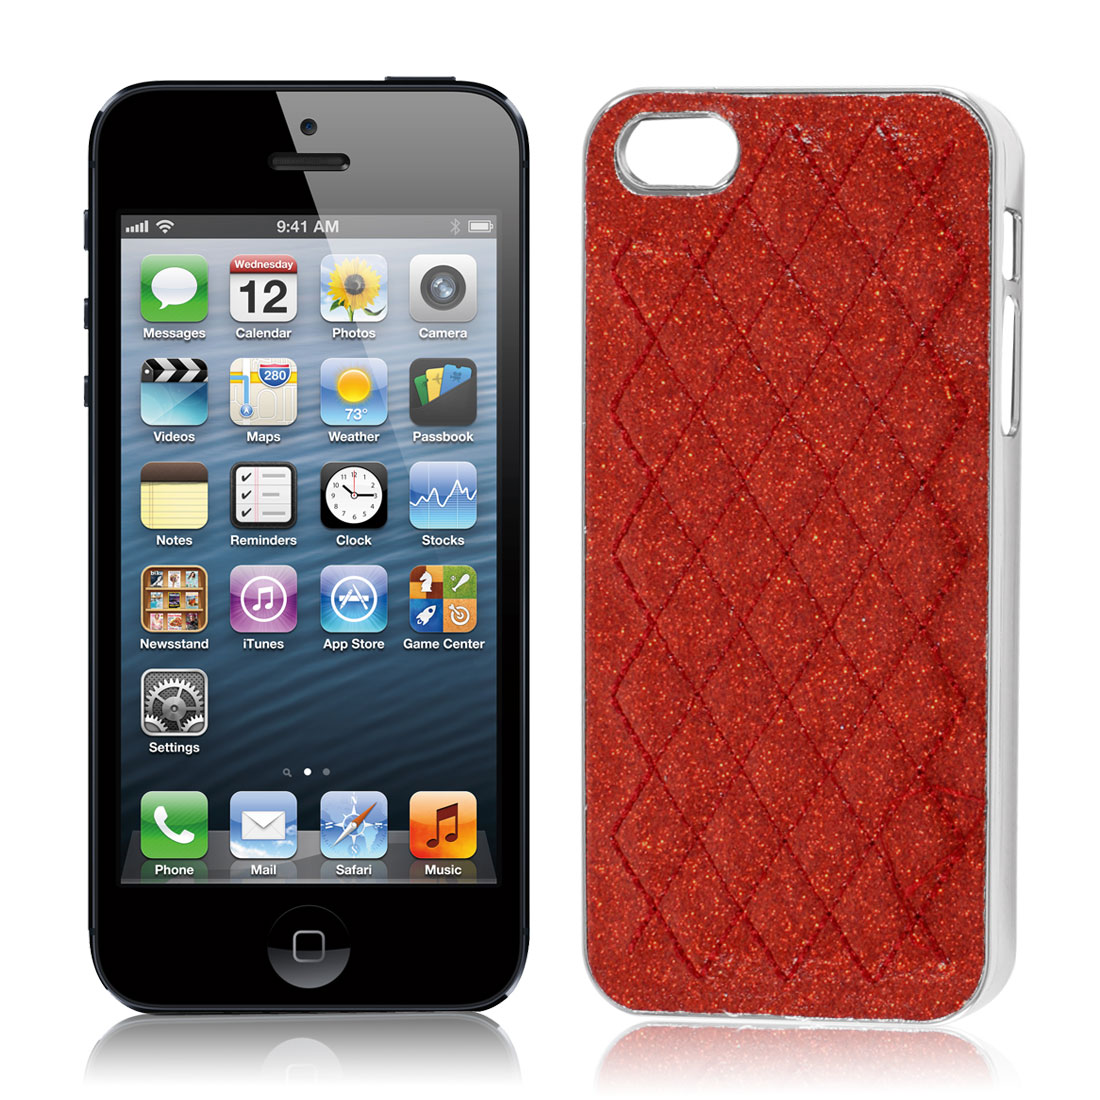 Red Powder Rhombus Print Hard Back Case Cover Shell for Apple iPhone 5 5G 5th